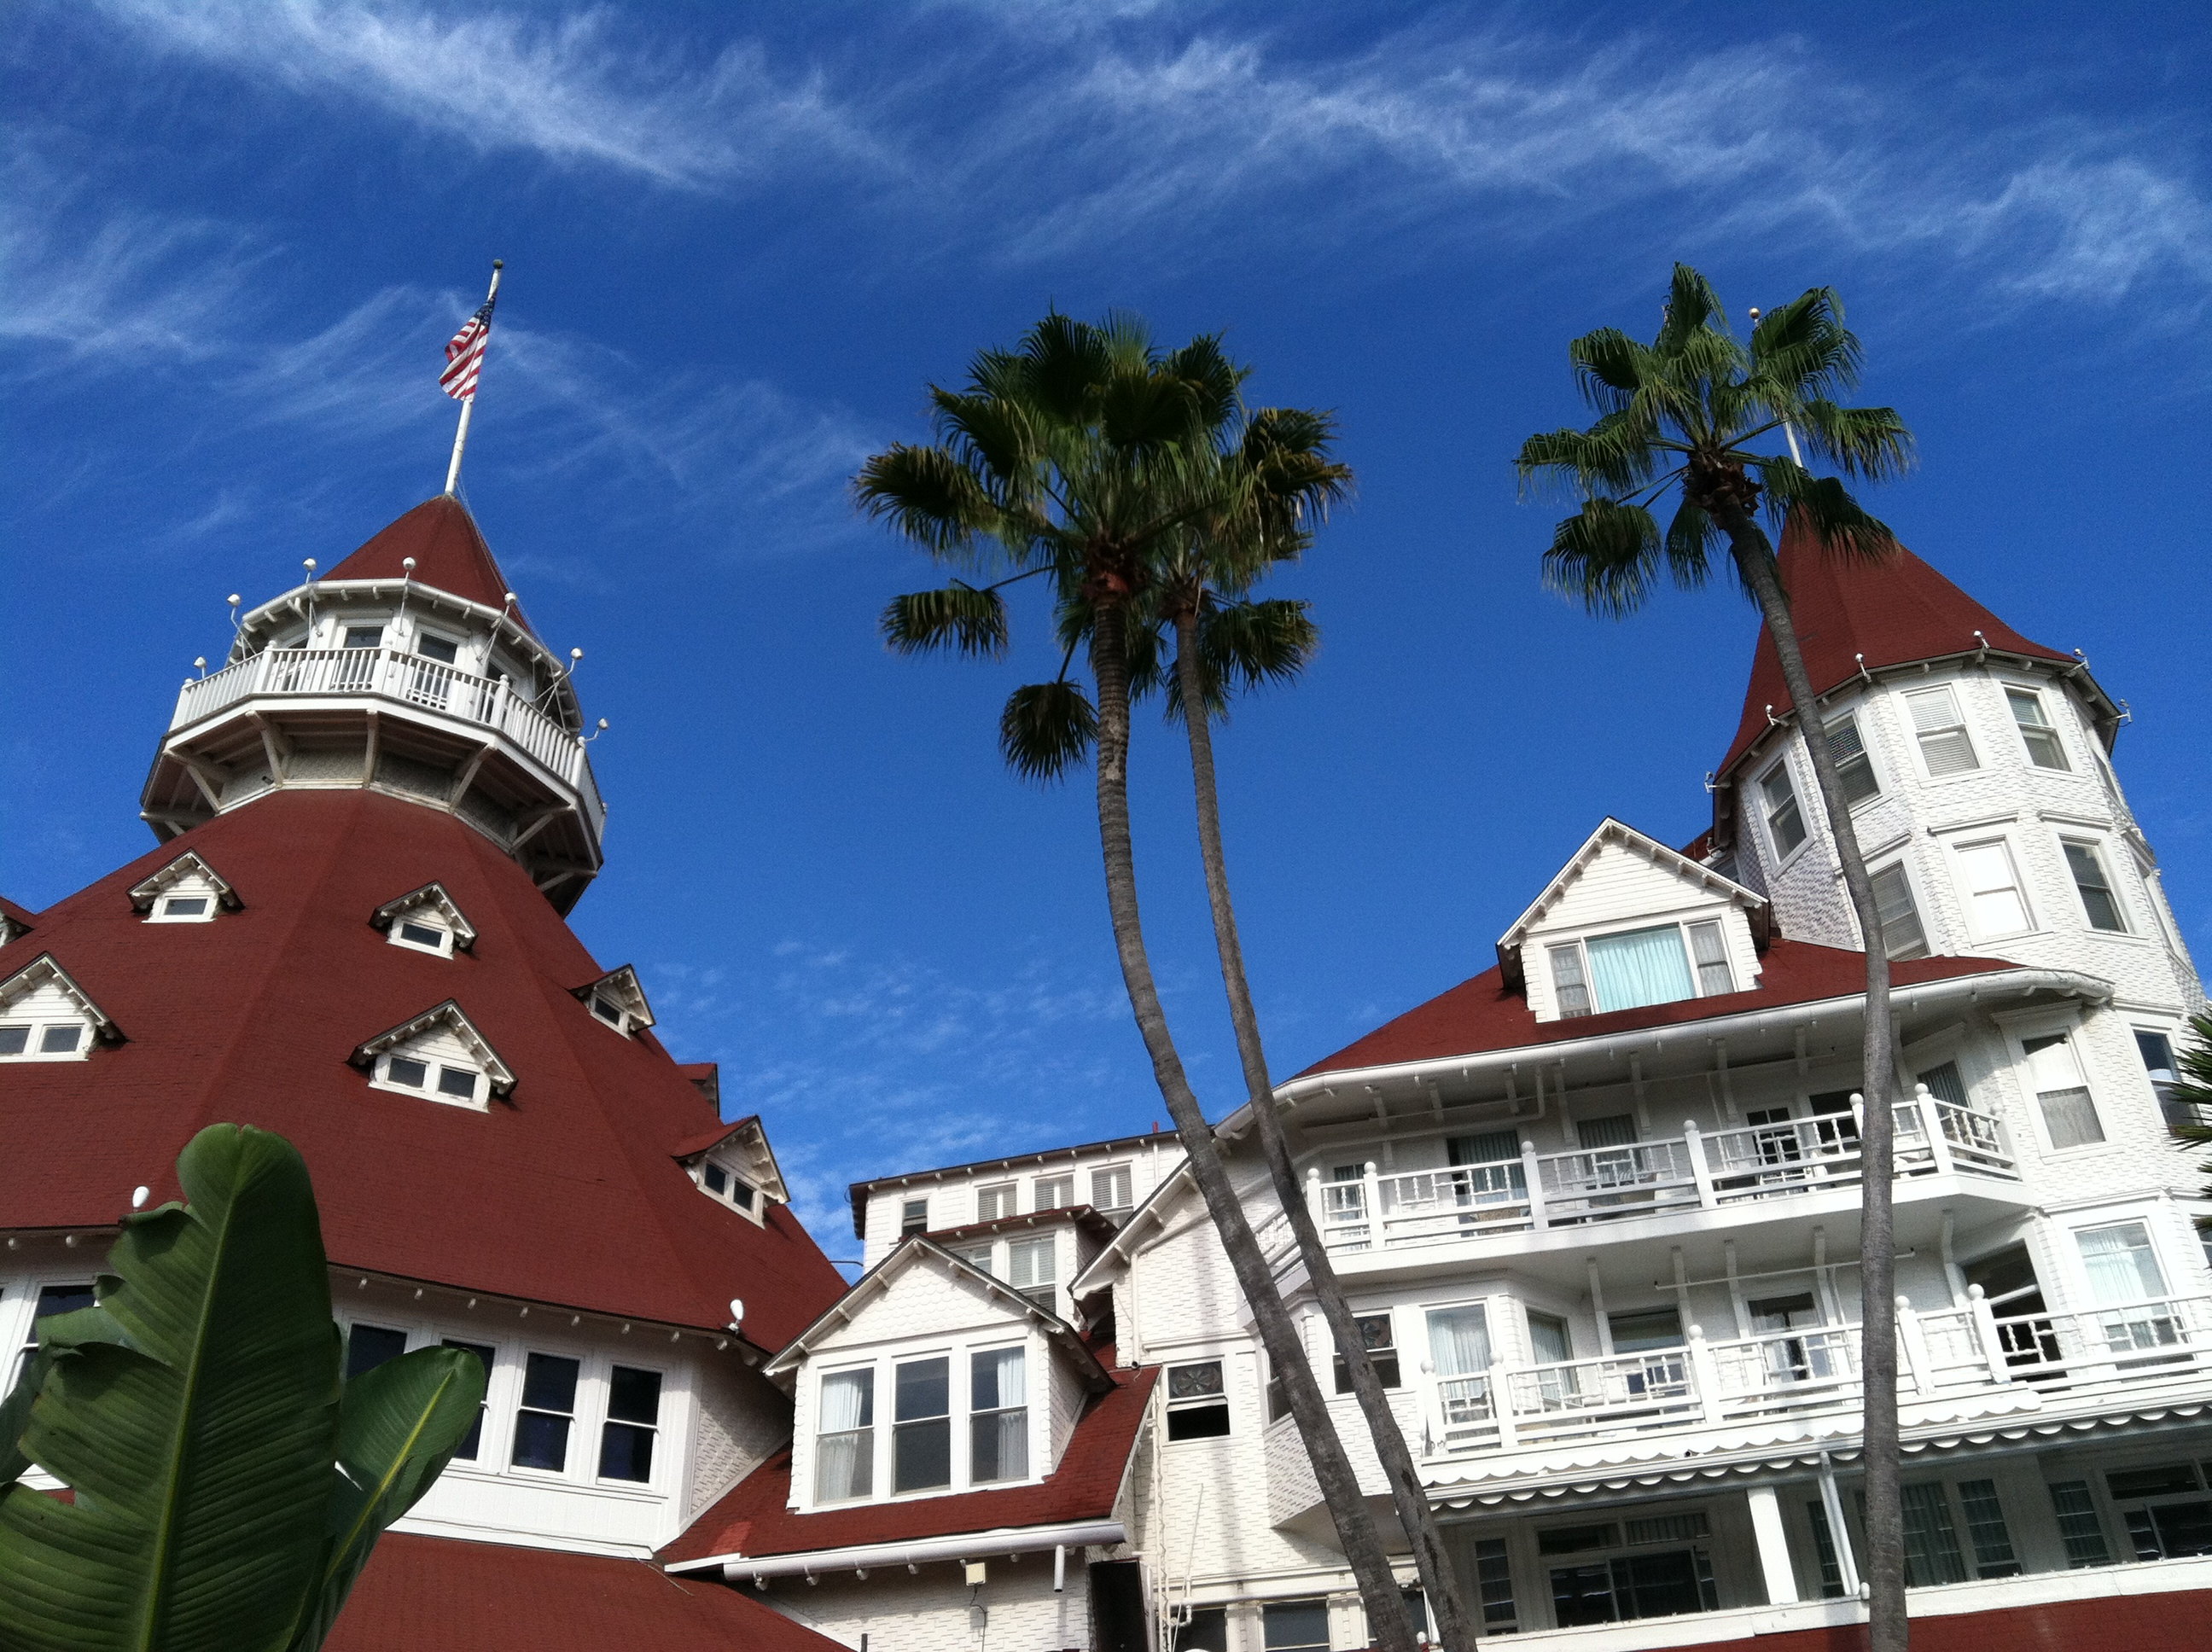 Firehouse Museum San Diego, Coronado for Comic-Con Fans - Wizards, Dwarves and Dorothy